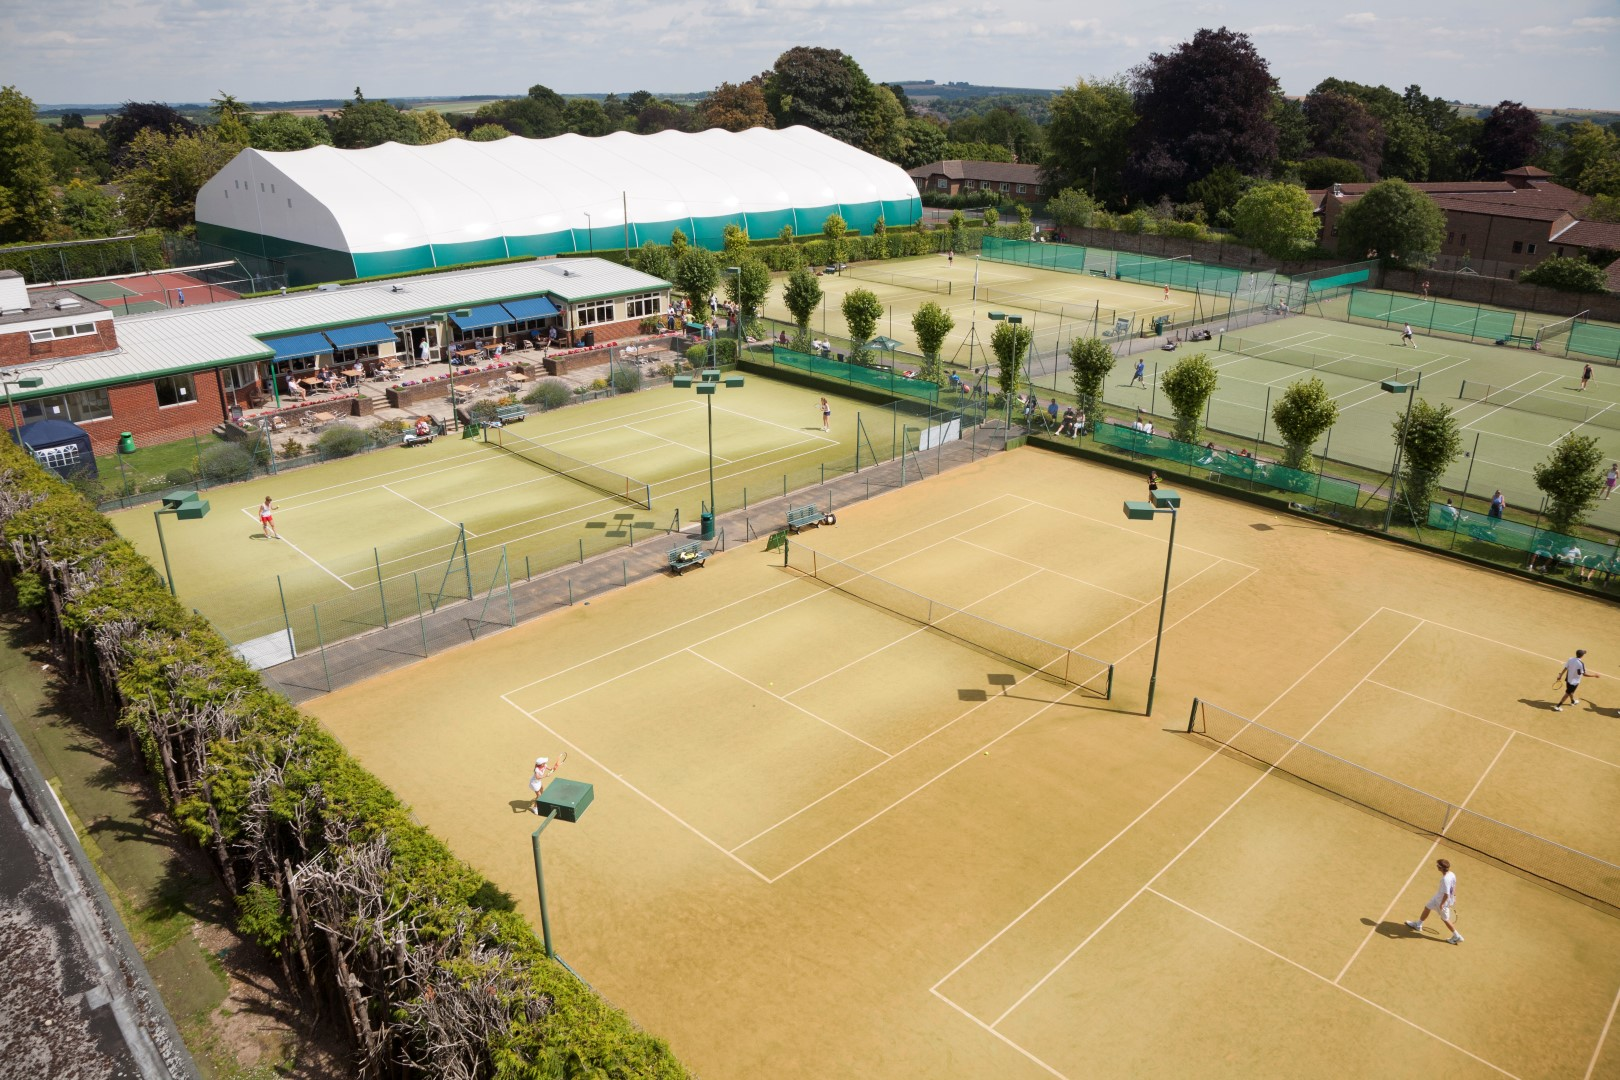 TENNIS - Block bookings slots available